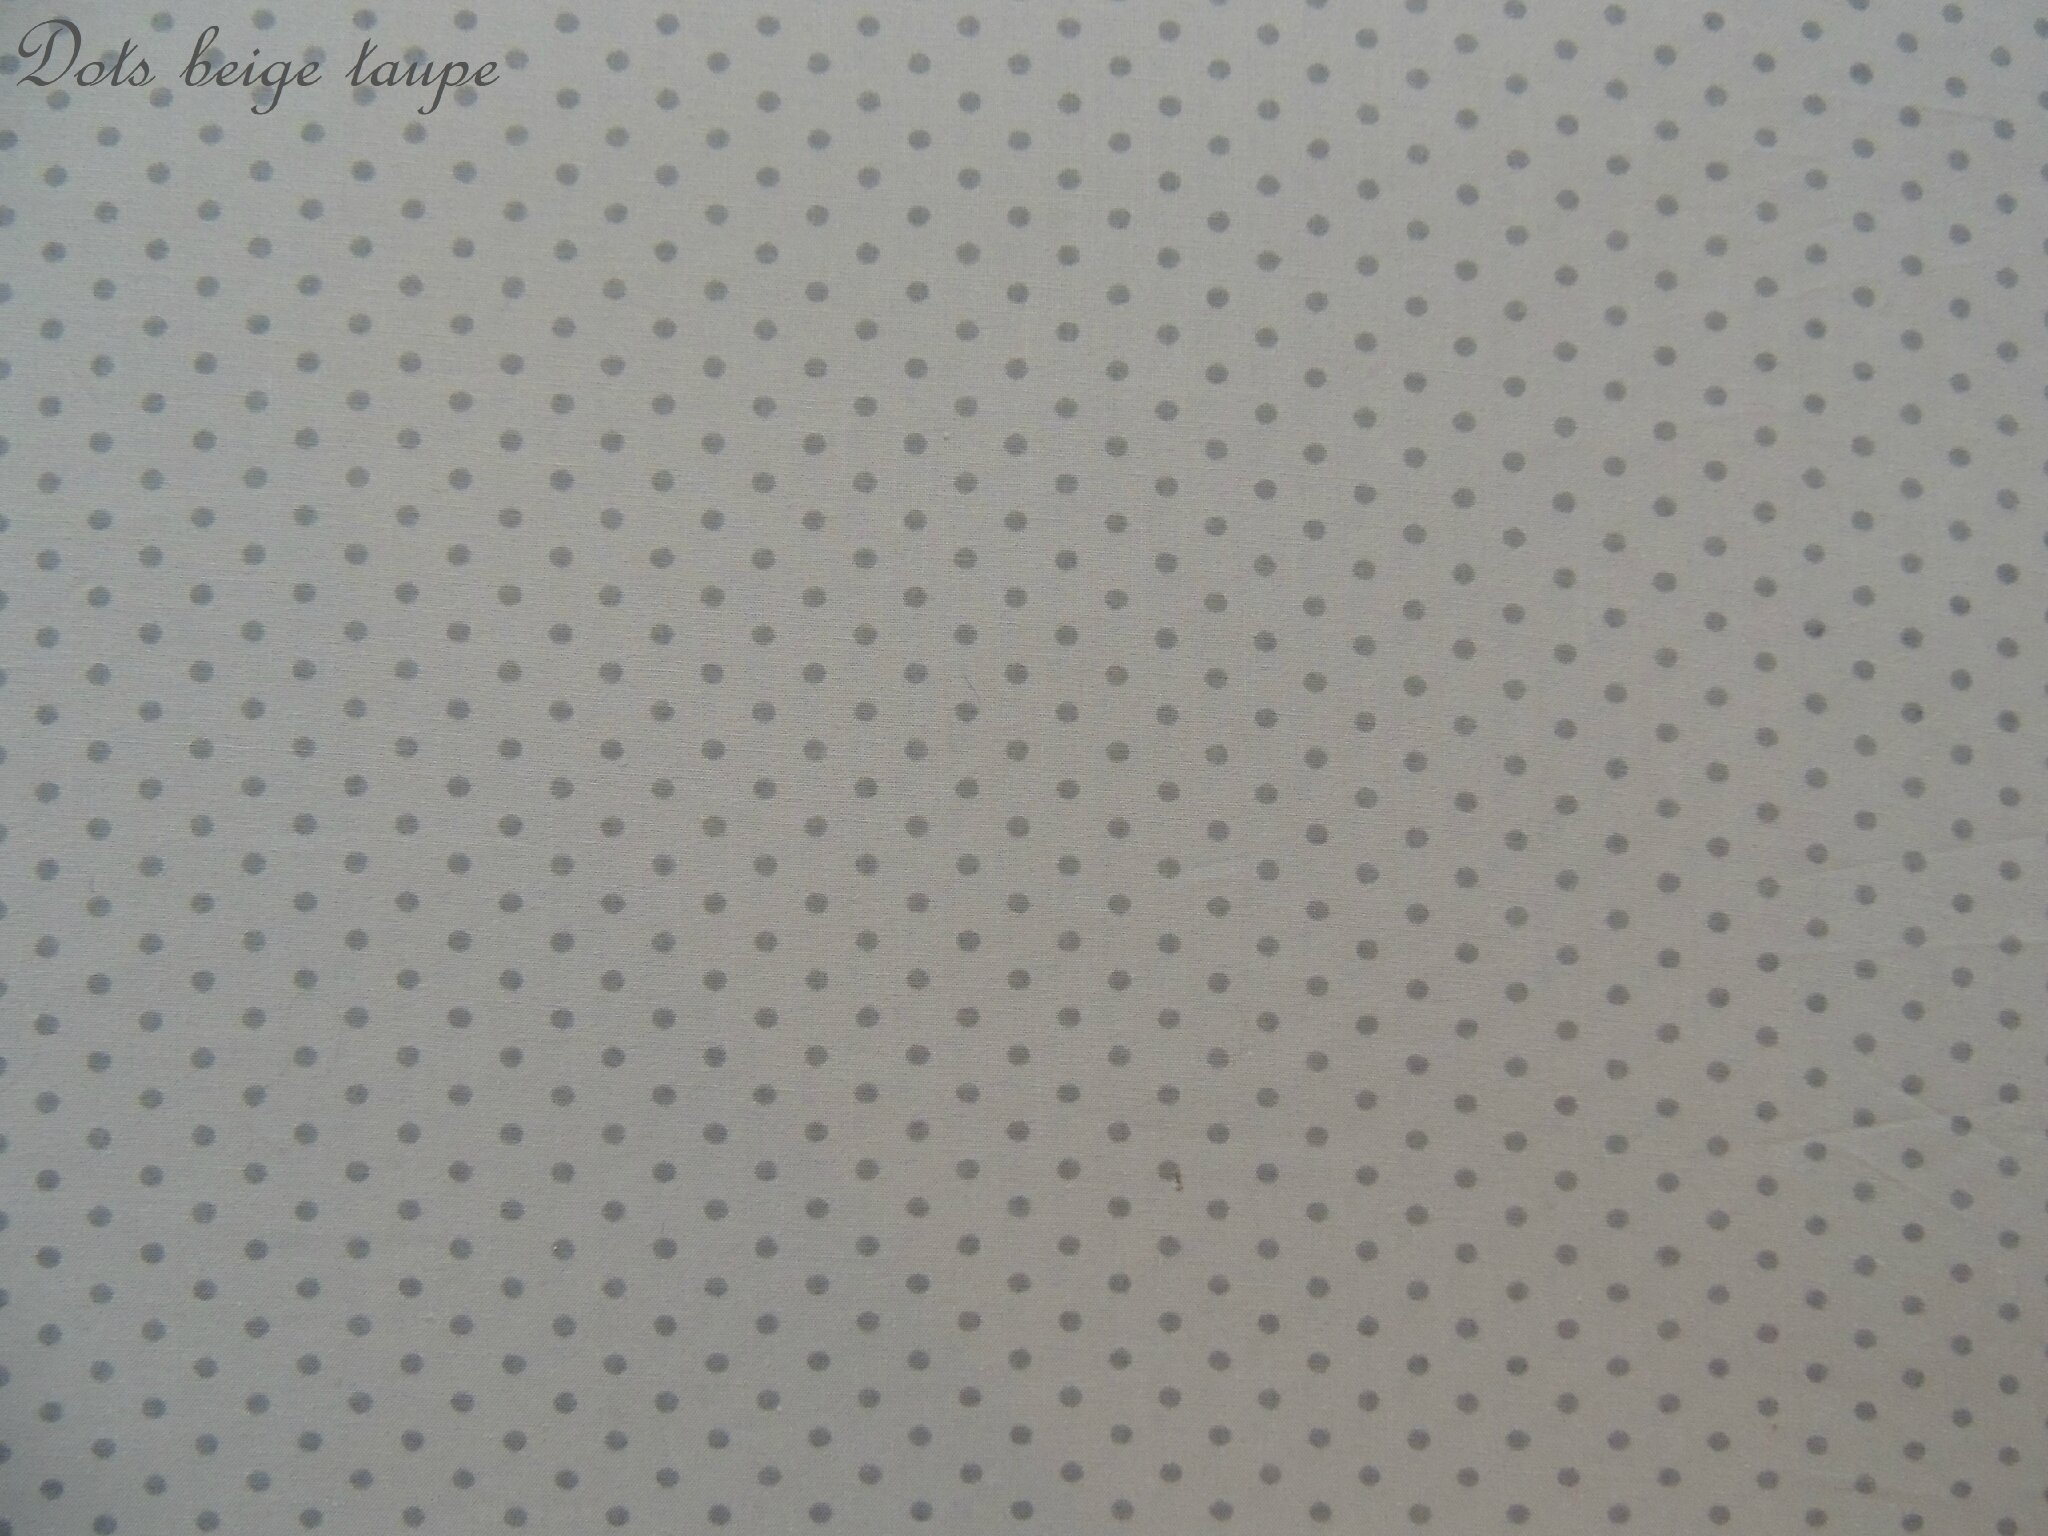 Dots beige taupe